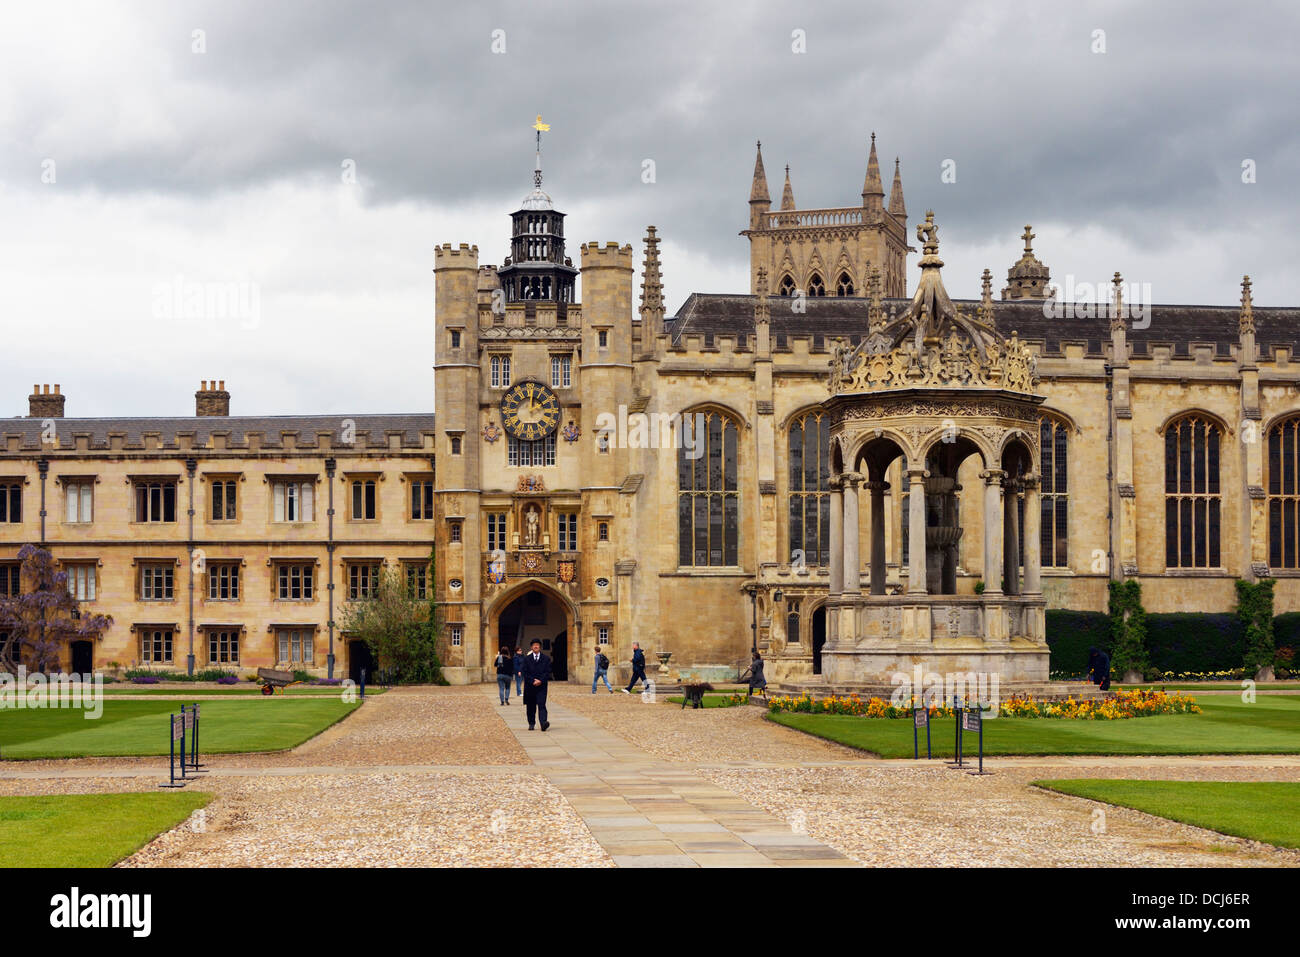 The Clock Tower and Great Court. Triniry College, University of Cambridge, Cambridgeshire, England, United Kingdom, - Stock Image